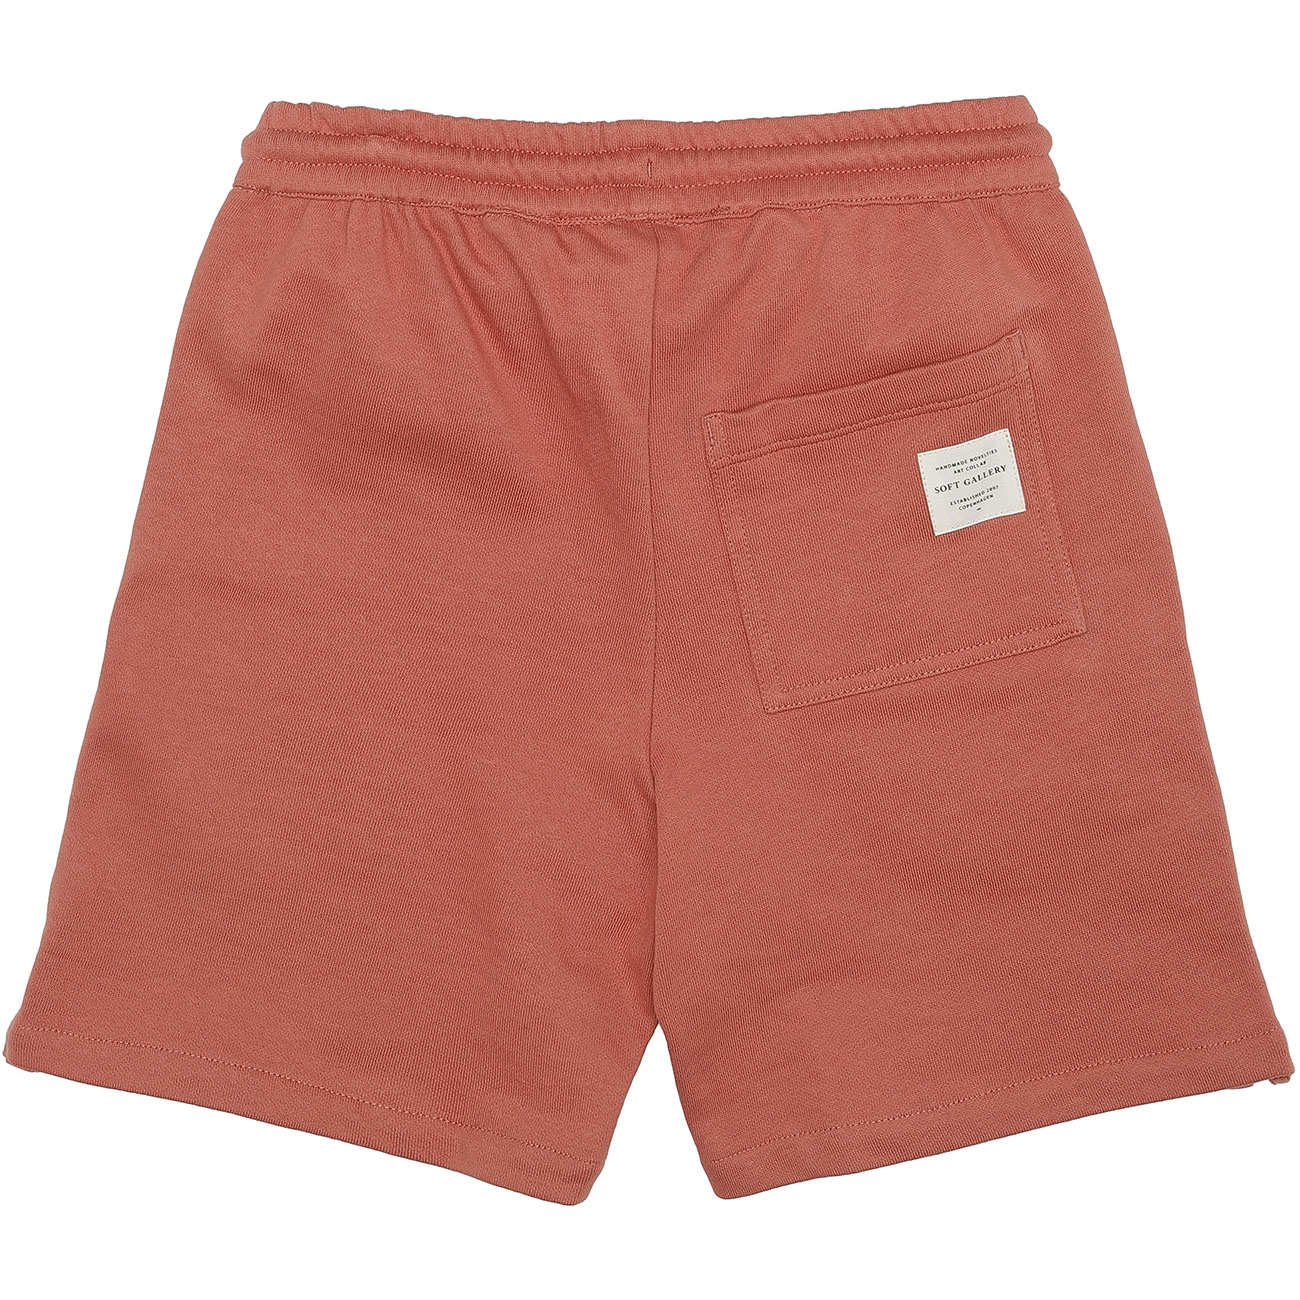 Soft-Gallery-Alisdair-Shorts-Baked-Clay-red-roed